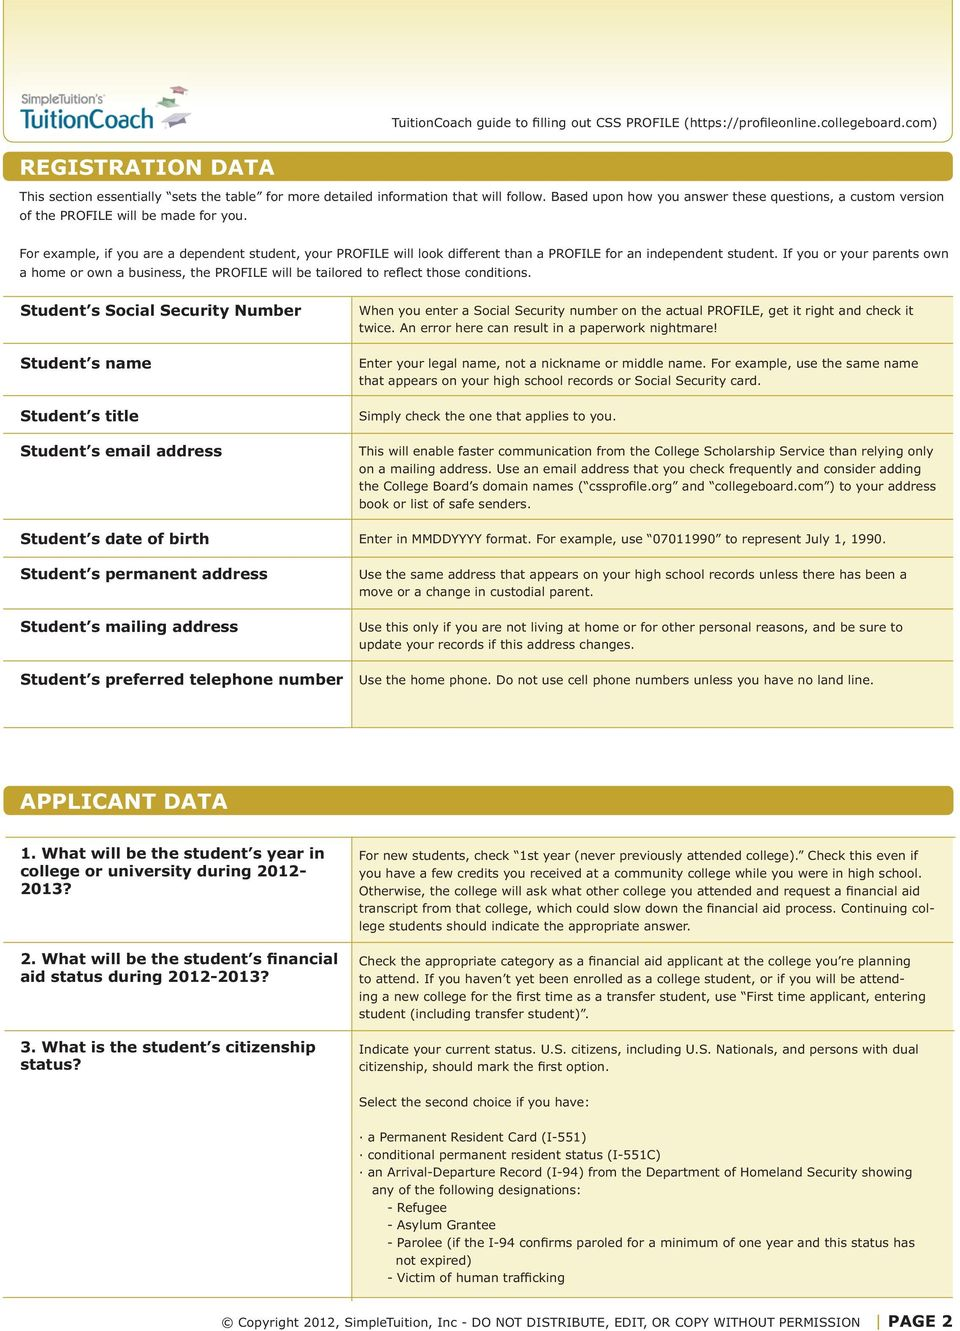 Worksheets Css Profile Worksheet worksheet guidelines why use this tool how does the css profile for example if you are a dependent student your will look different than